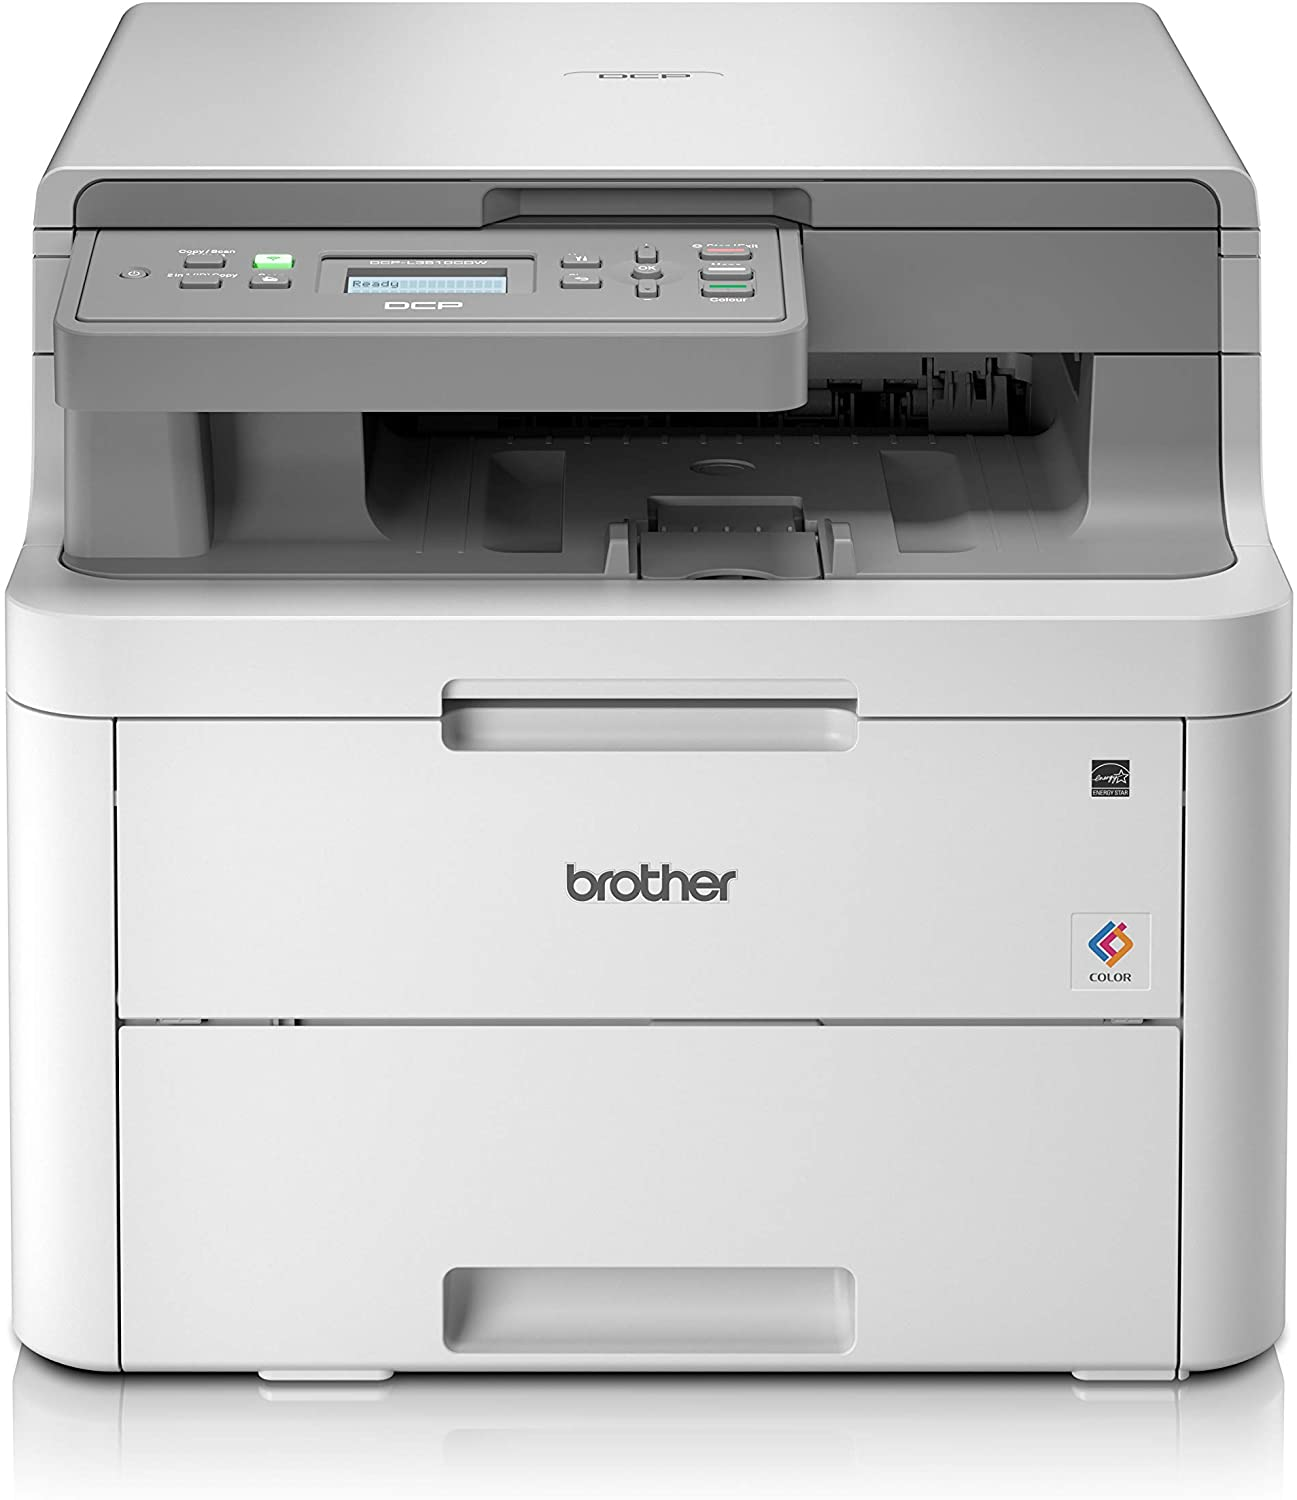 Brother DCP-L3510CDW Colour Laser Printer reviews uk